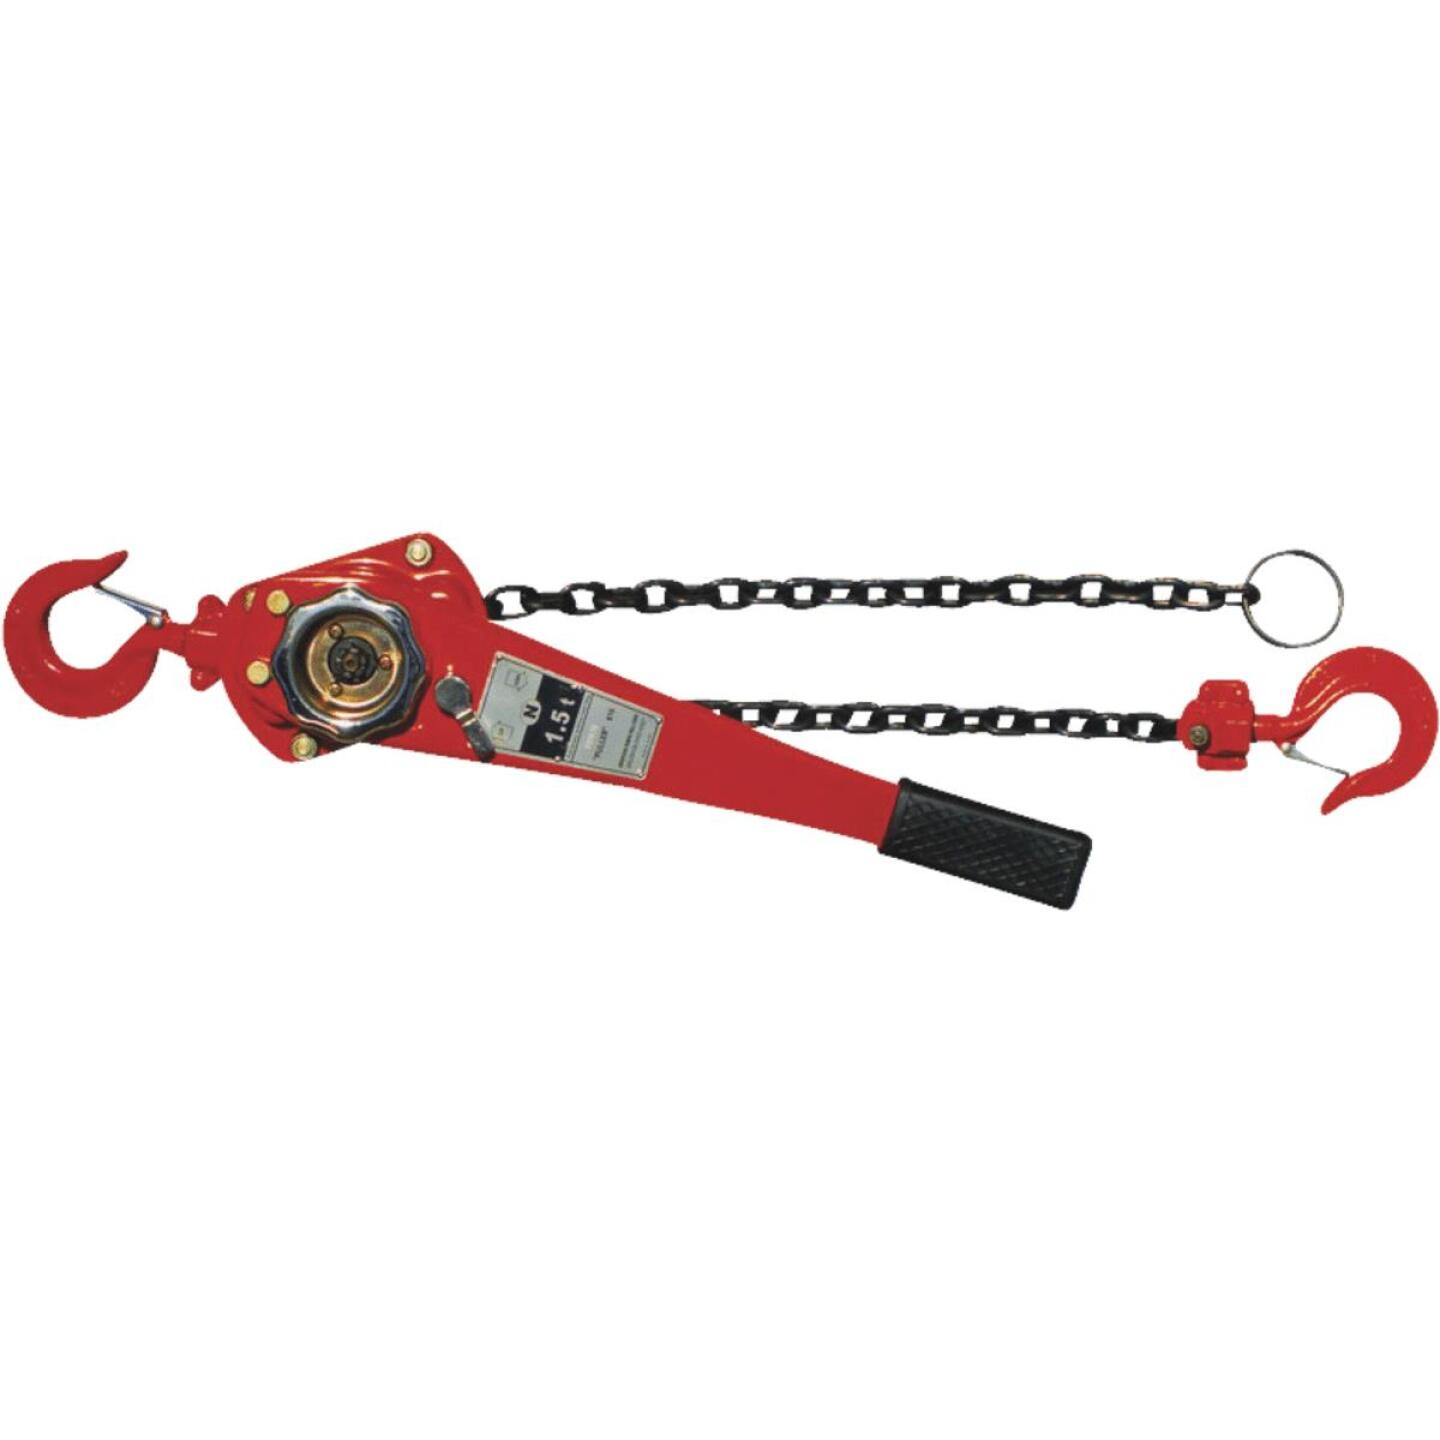 American Power Pull 1-1/2-Ton Load Capacity 5 Ft. Standard Lift Chain Puller Image 1